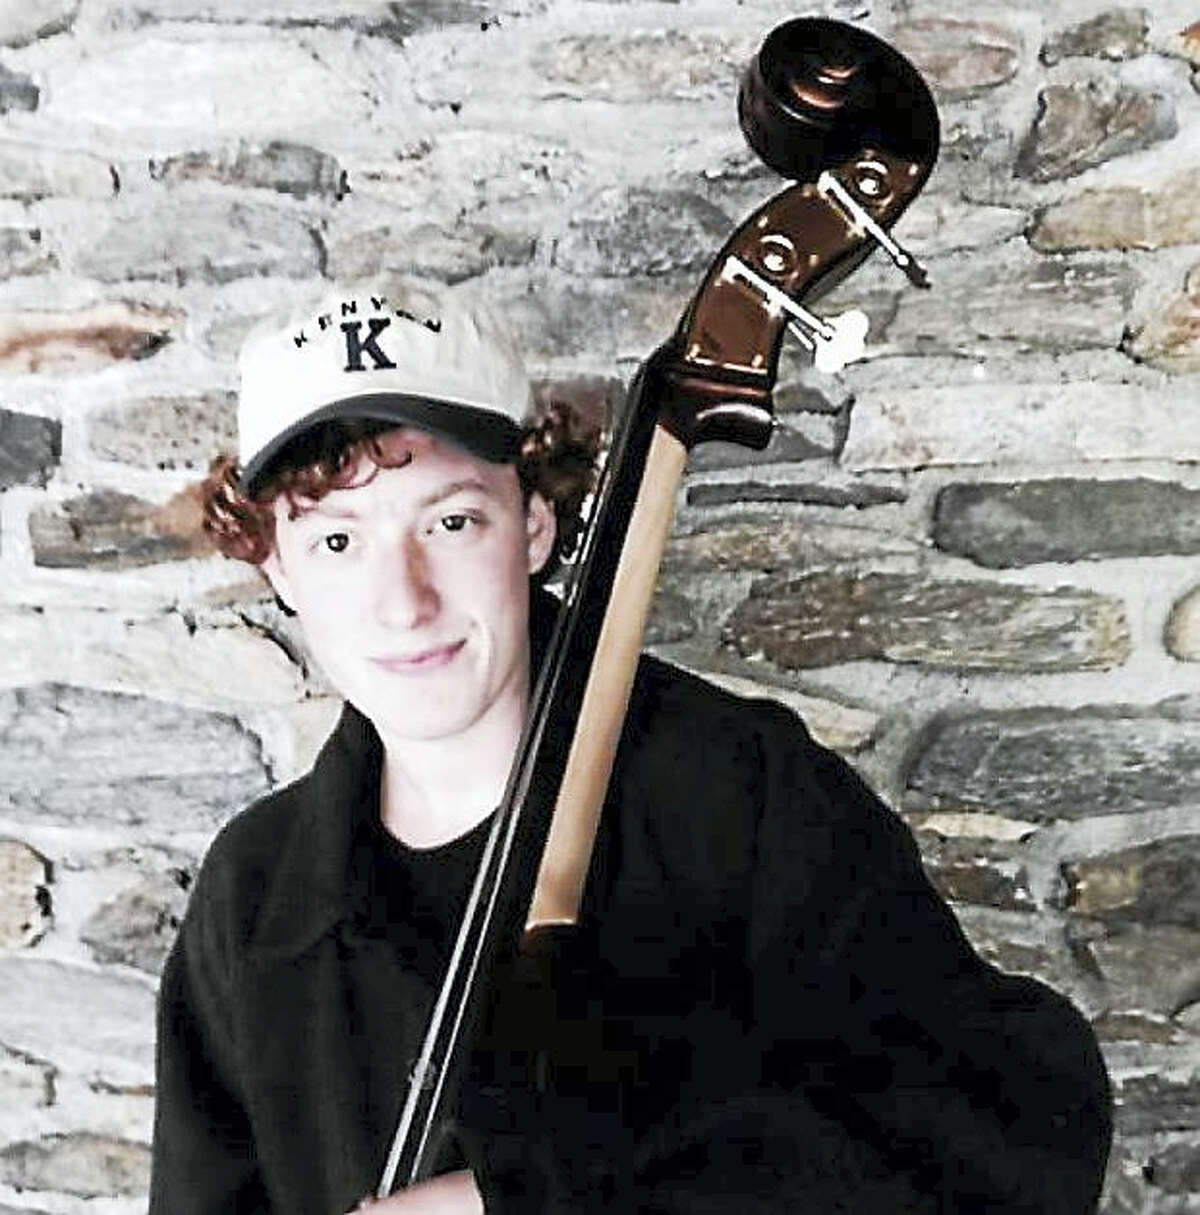 Julian Wiesman received $500 through the Paolo Abate Mini Grant Arts Award through the Torrington UNICO Scholarship Fund towards his freshman year this fall at the New England Conservatory of Music in Boston, MA.